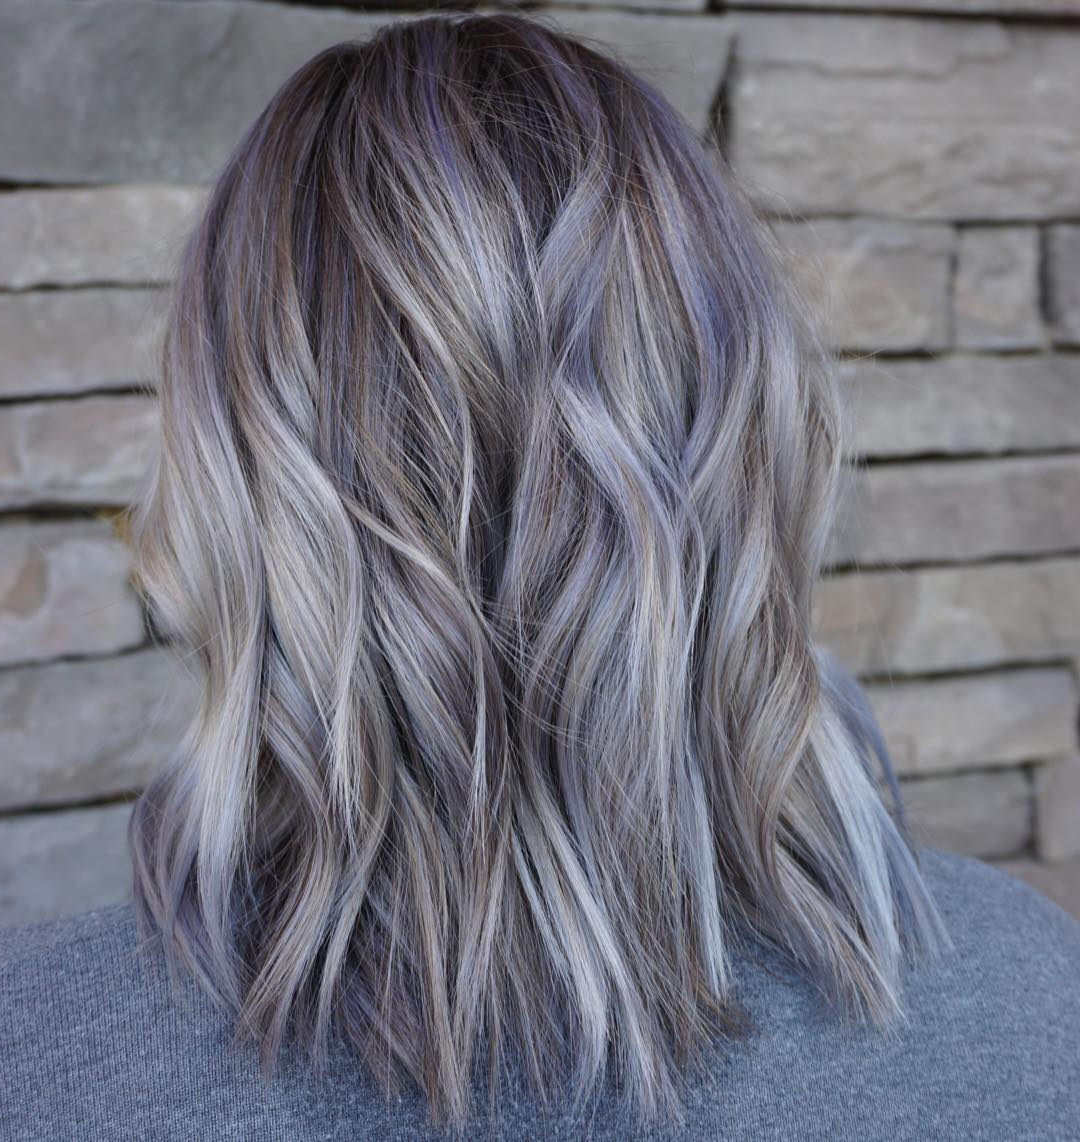 10 Wavy Haircuts For Medium Length Hair – Color Me Gorgeous Intended For 2018 Mid Length Layered Ash Blonde Hairstyles (View 4 of 20)